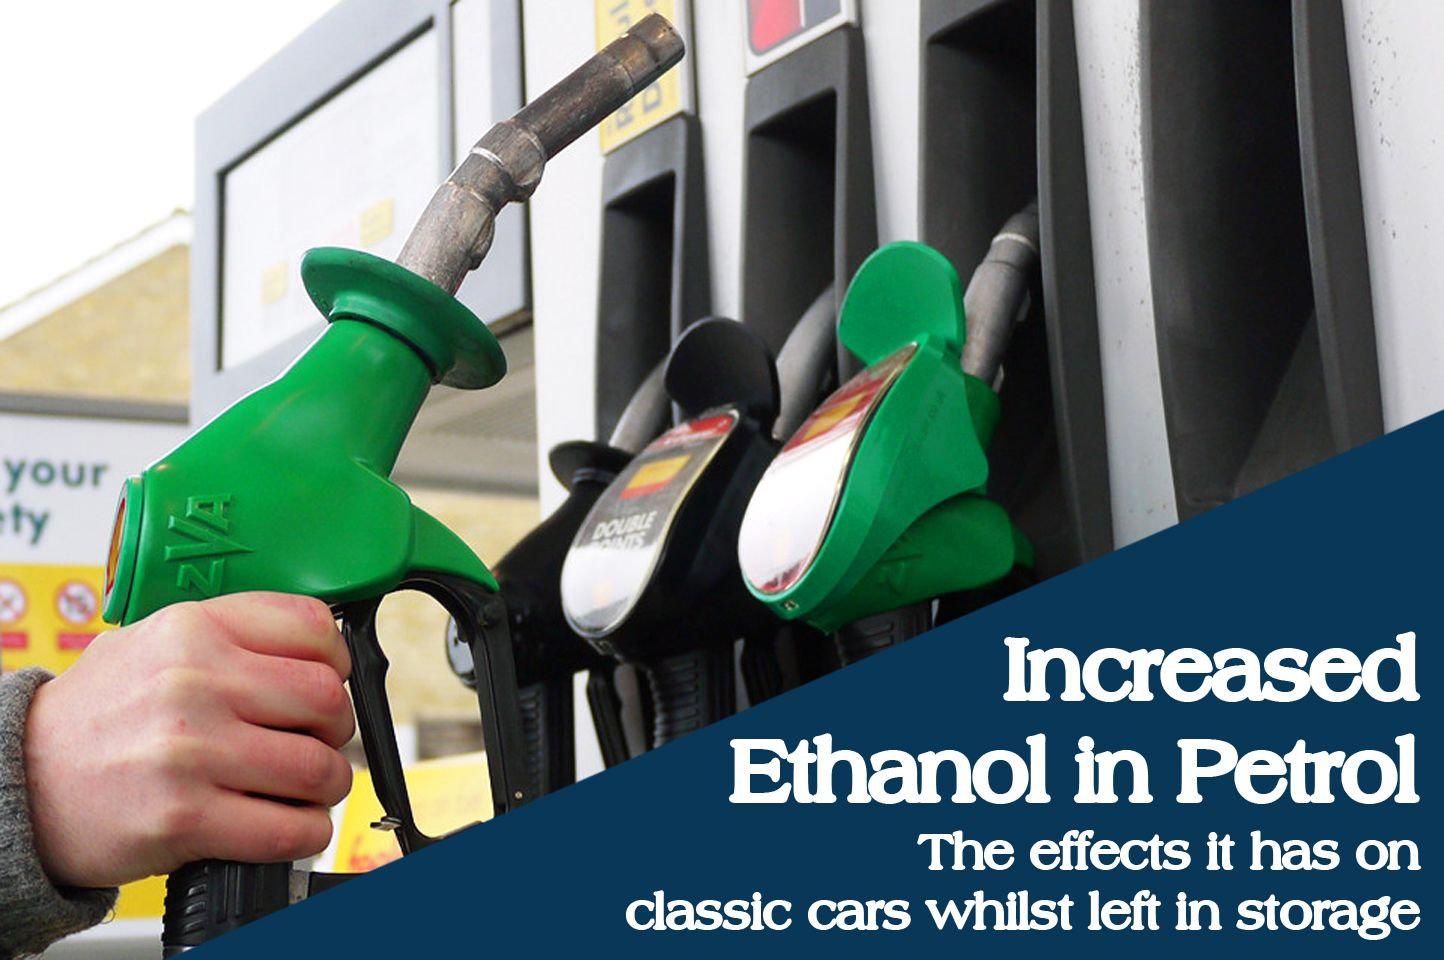 Increased Ethanol Content In Petrol: The Effects It Has On Classic Cars Whilst Left In Storage